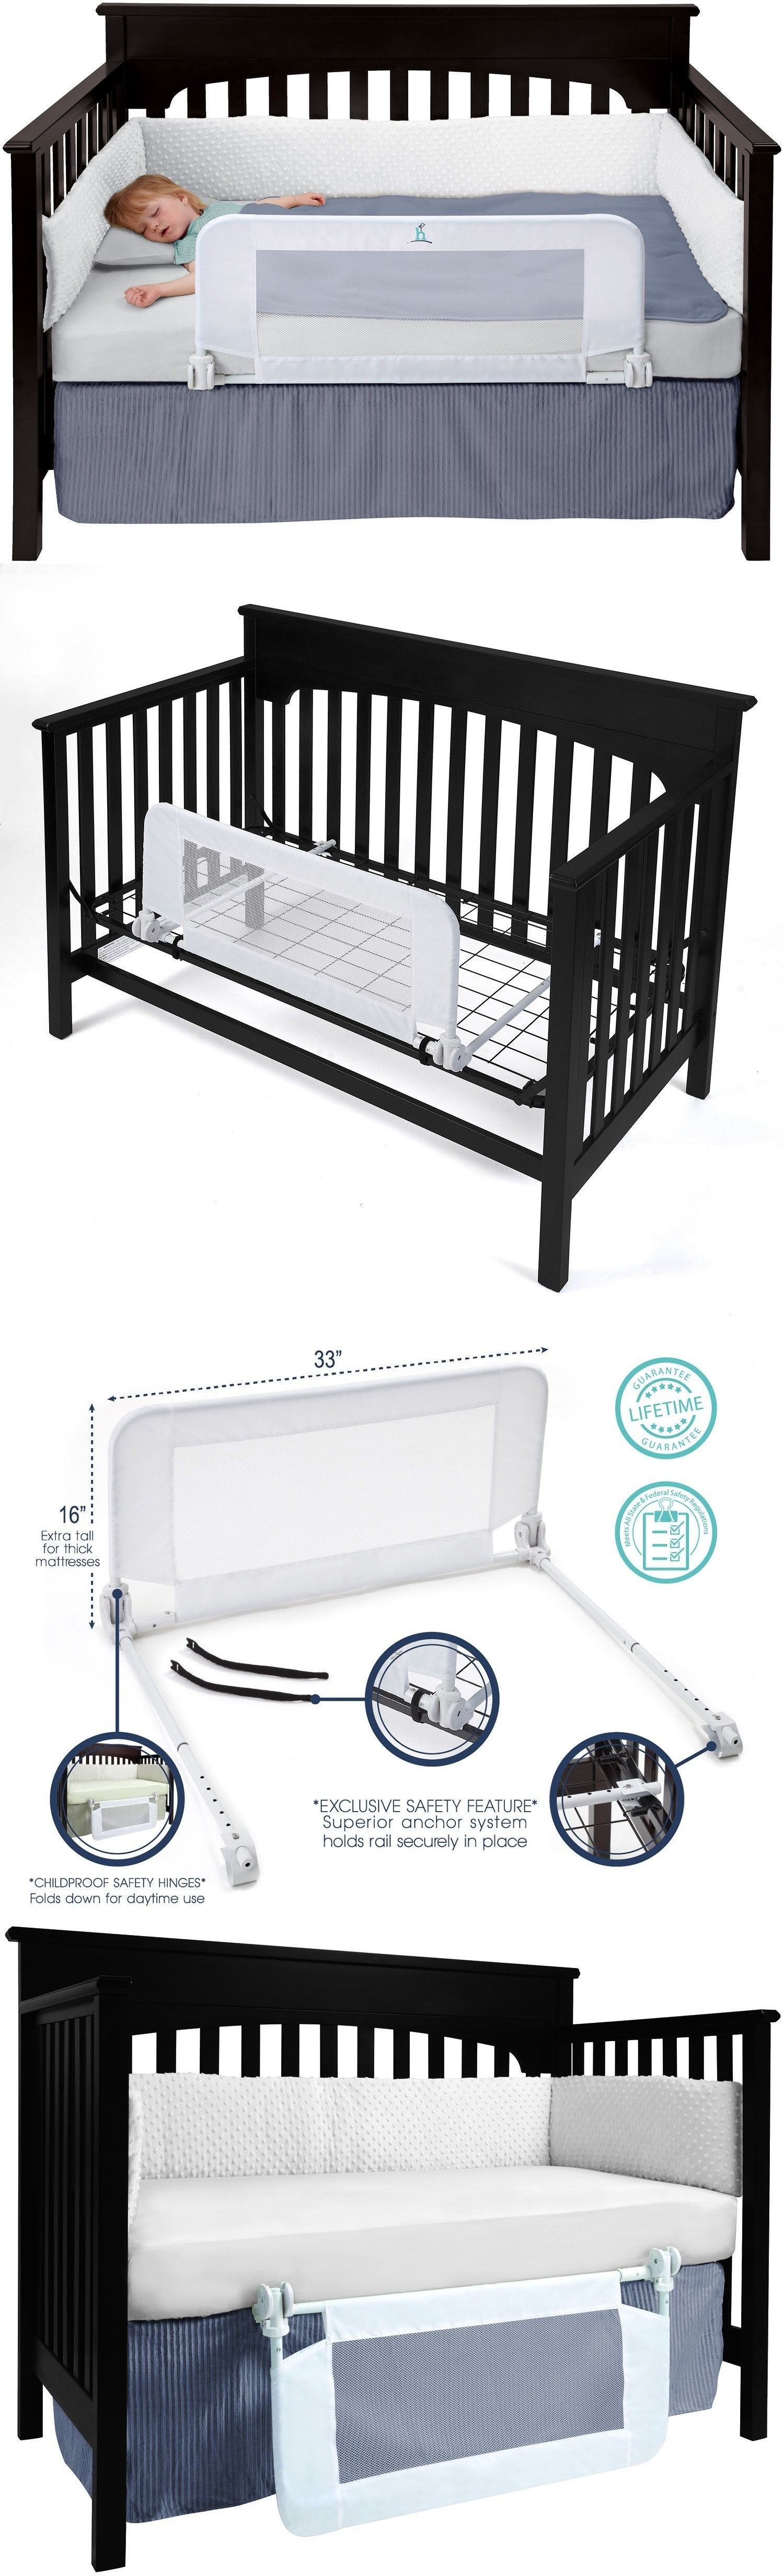 hiccapop convertible crib toddler bed rail guard with reinforced